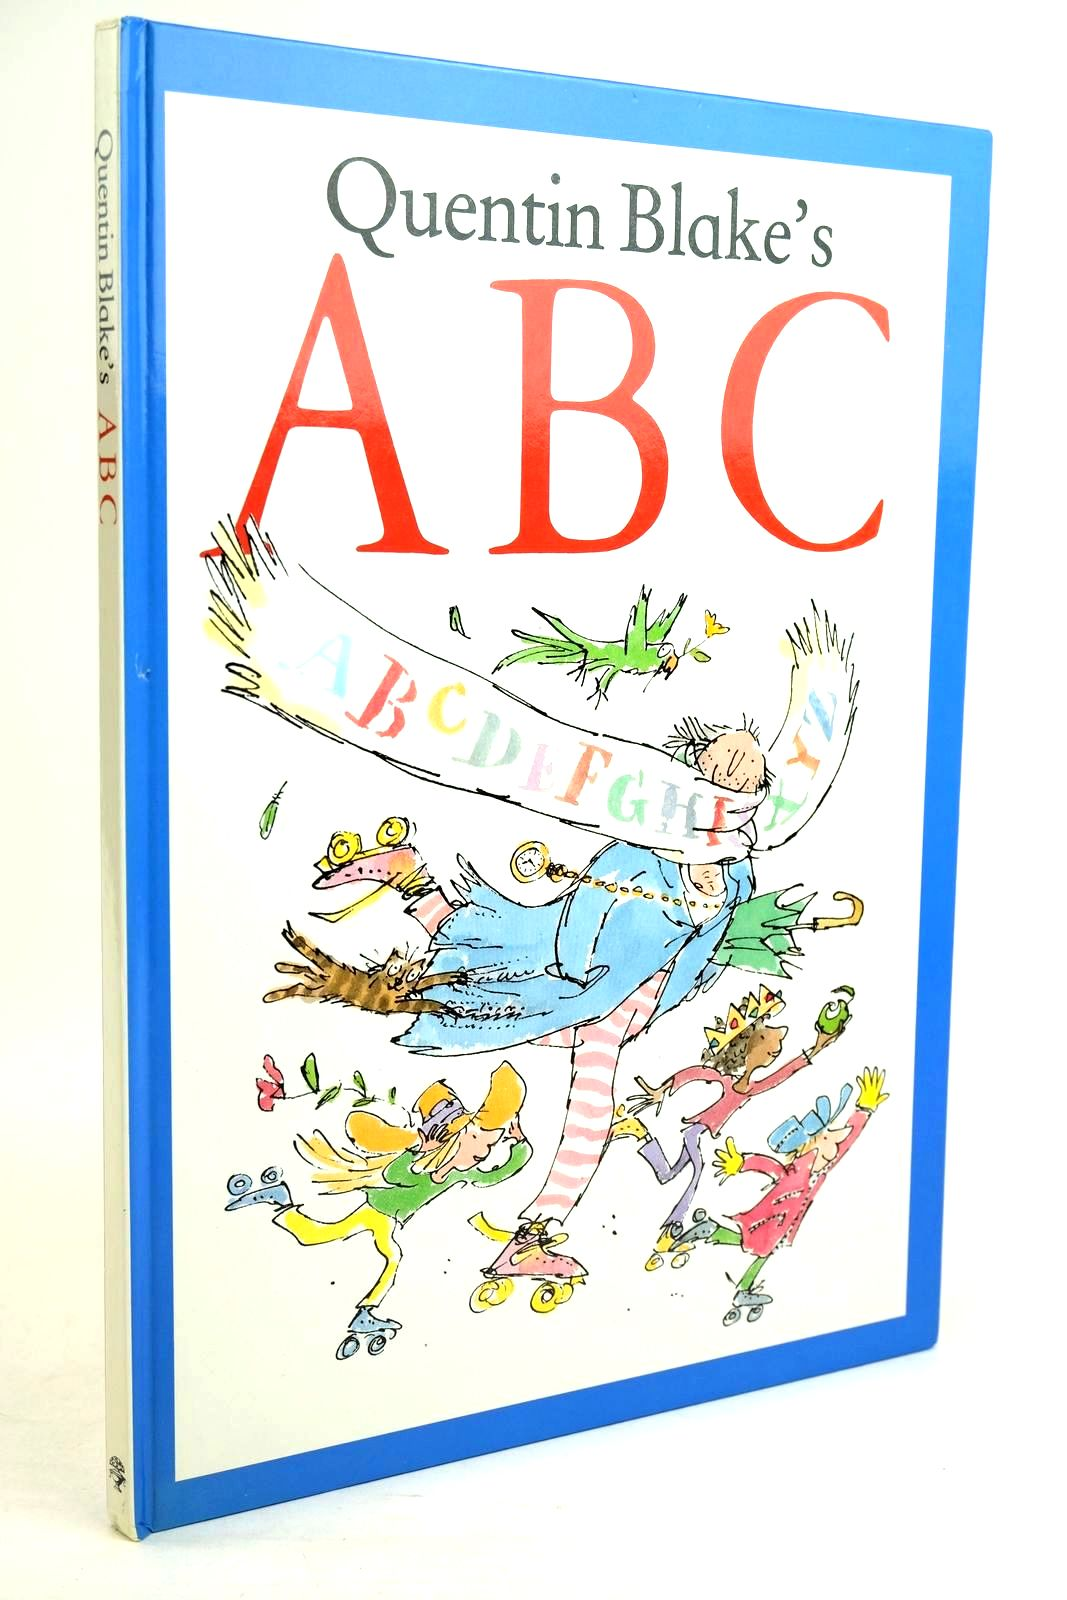 Photo of QUENTIN BLAKE'S ABC written by Blake, Quentin illustrated by Blake, Quentin published by Jonathan Cape (STOCK CODE: 1320361)  for sale by Stella & Rose's Books